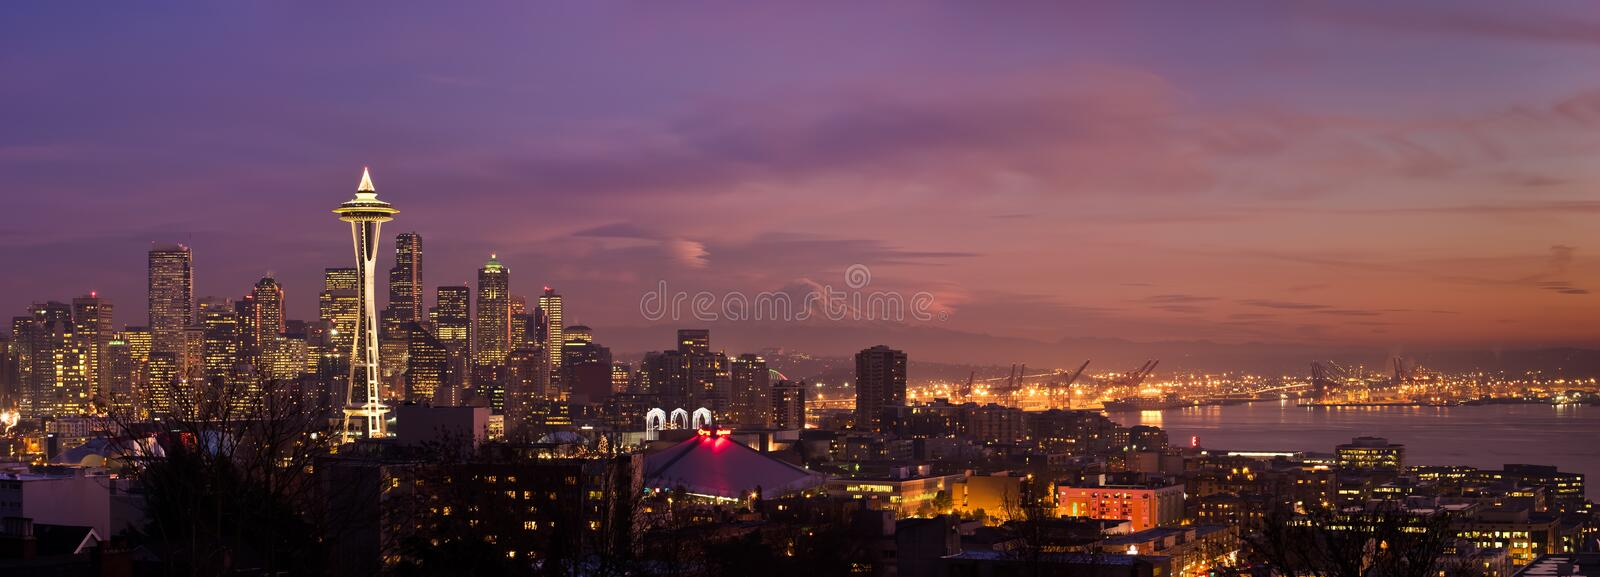 Skyline da cidade de Seattle fotografia de stock royalty free